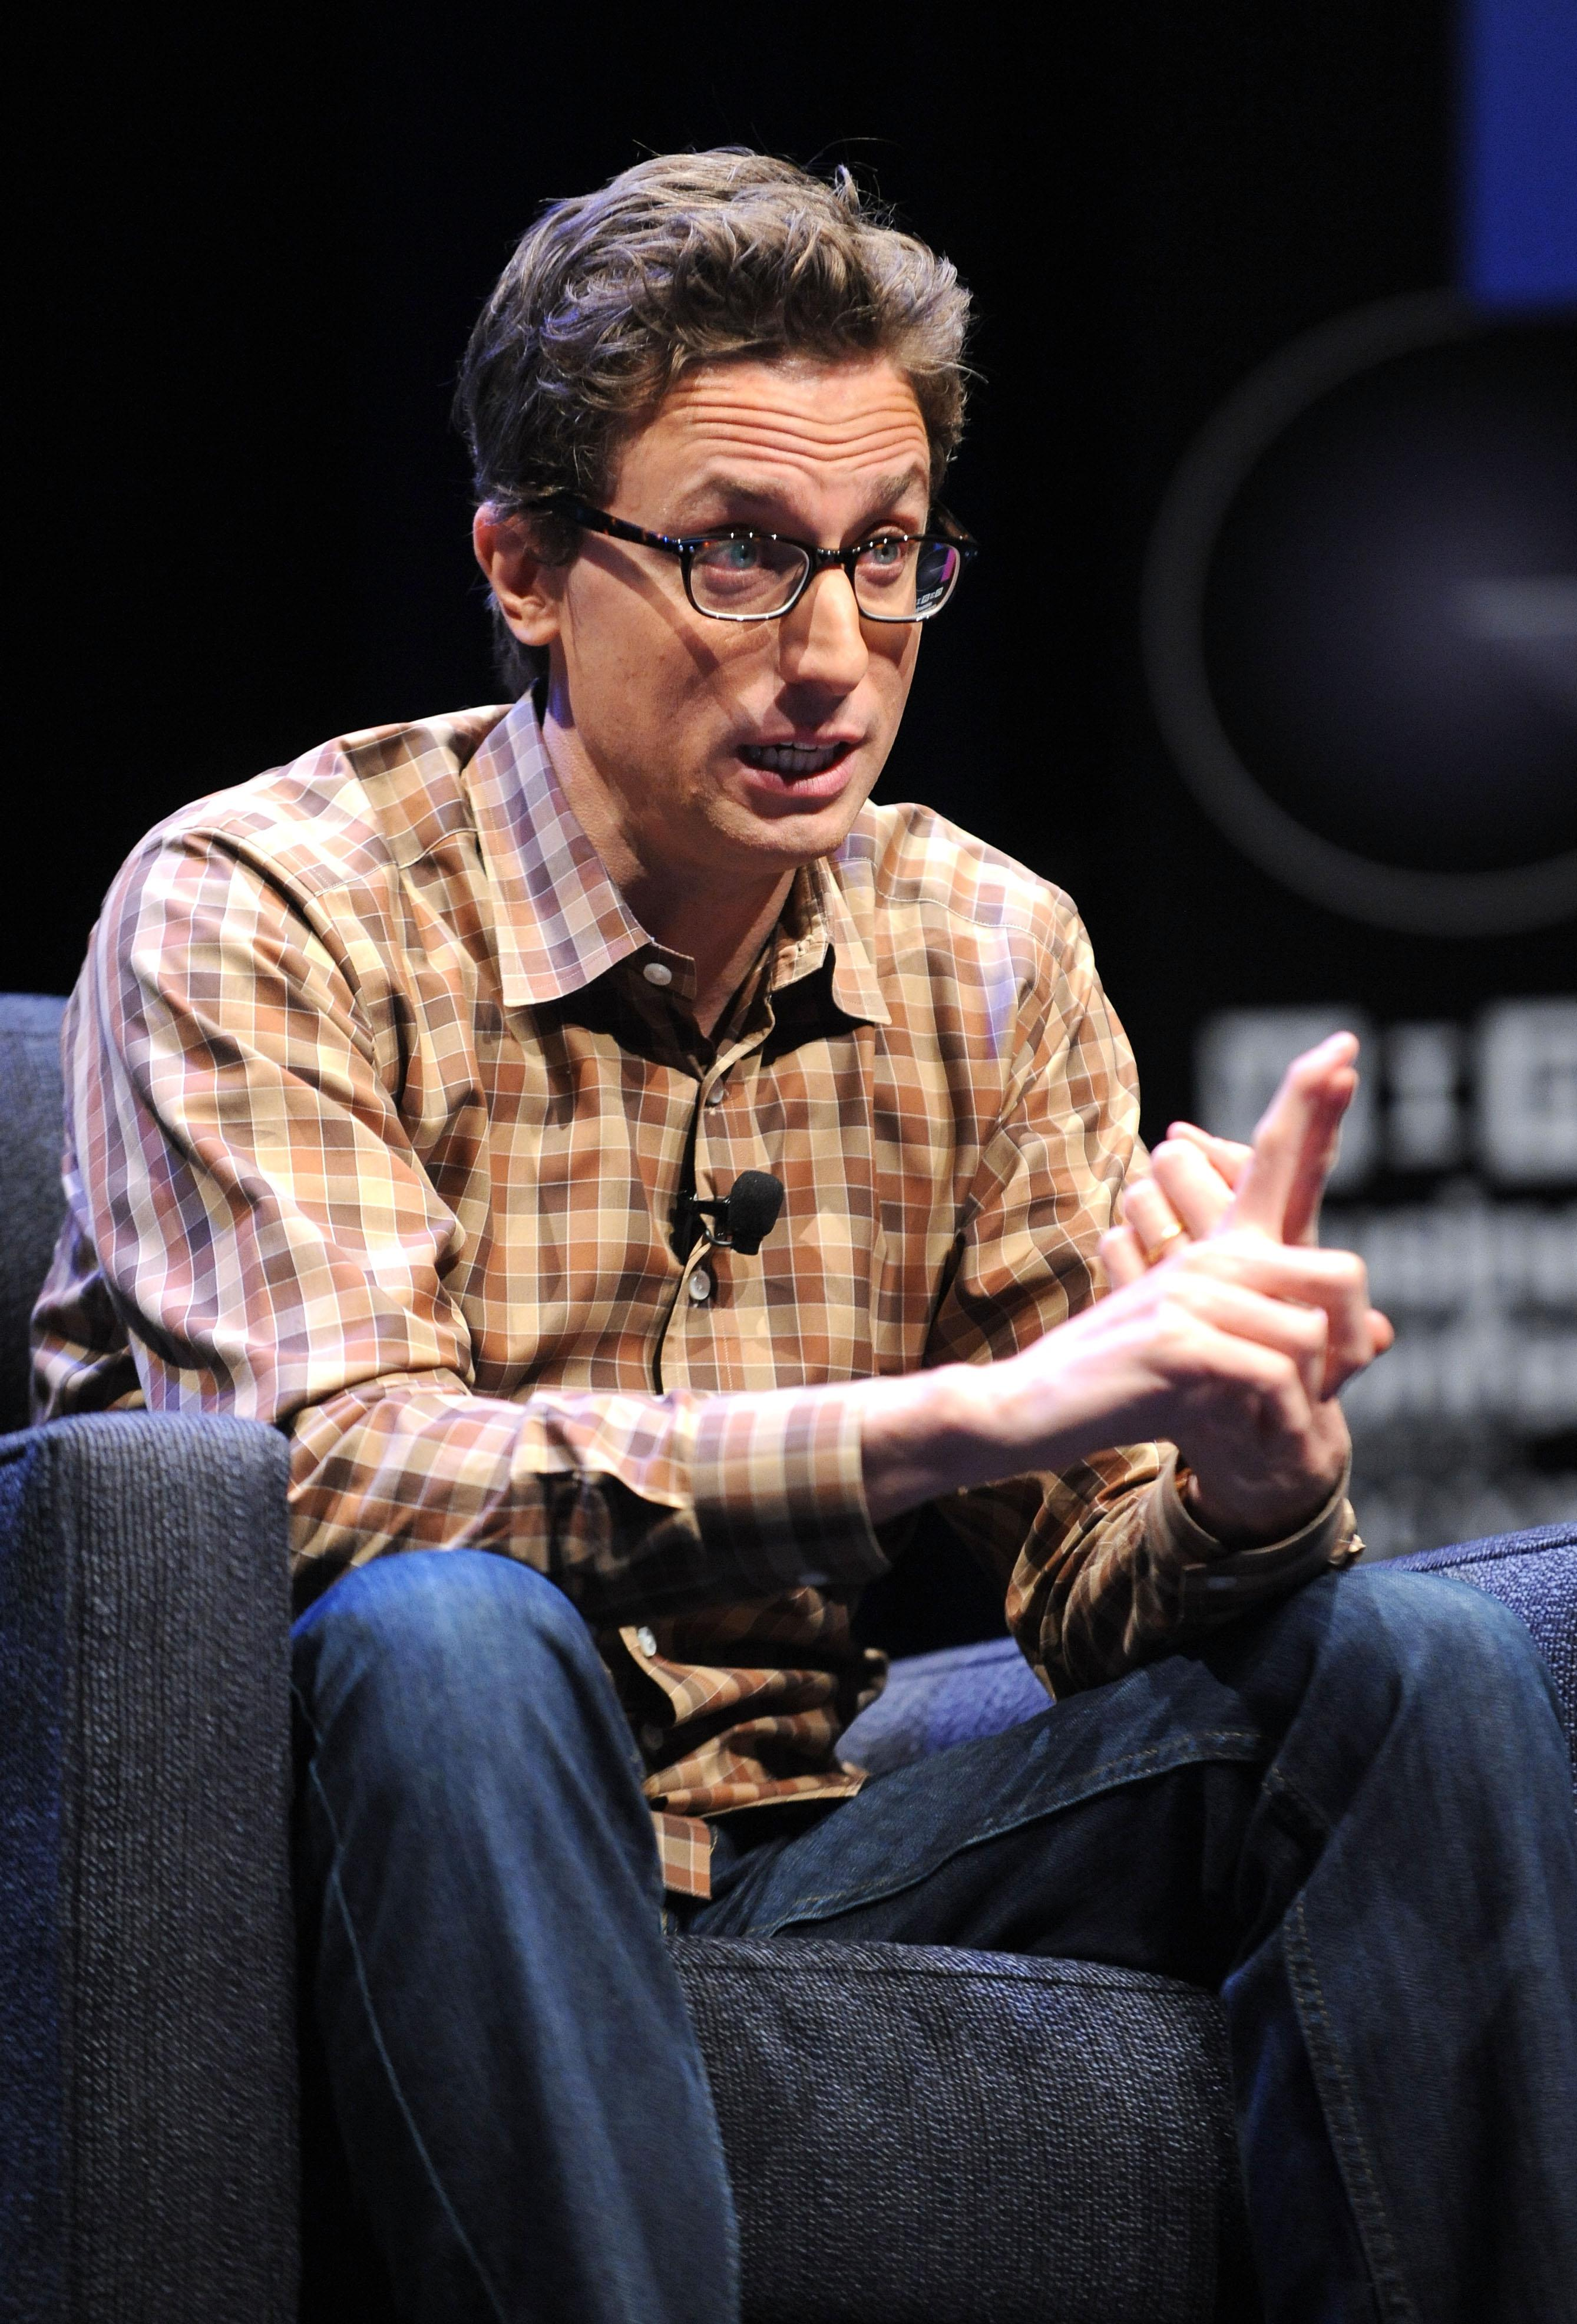 Founder and CEO of BuzzFeed, Jonah Peretti speaks at the Wired Business Conference: Think Bigger, at Museum of Jewish Heritage, May 7, 2013 in New York City.